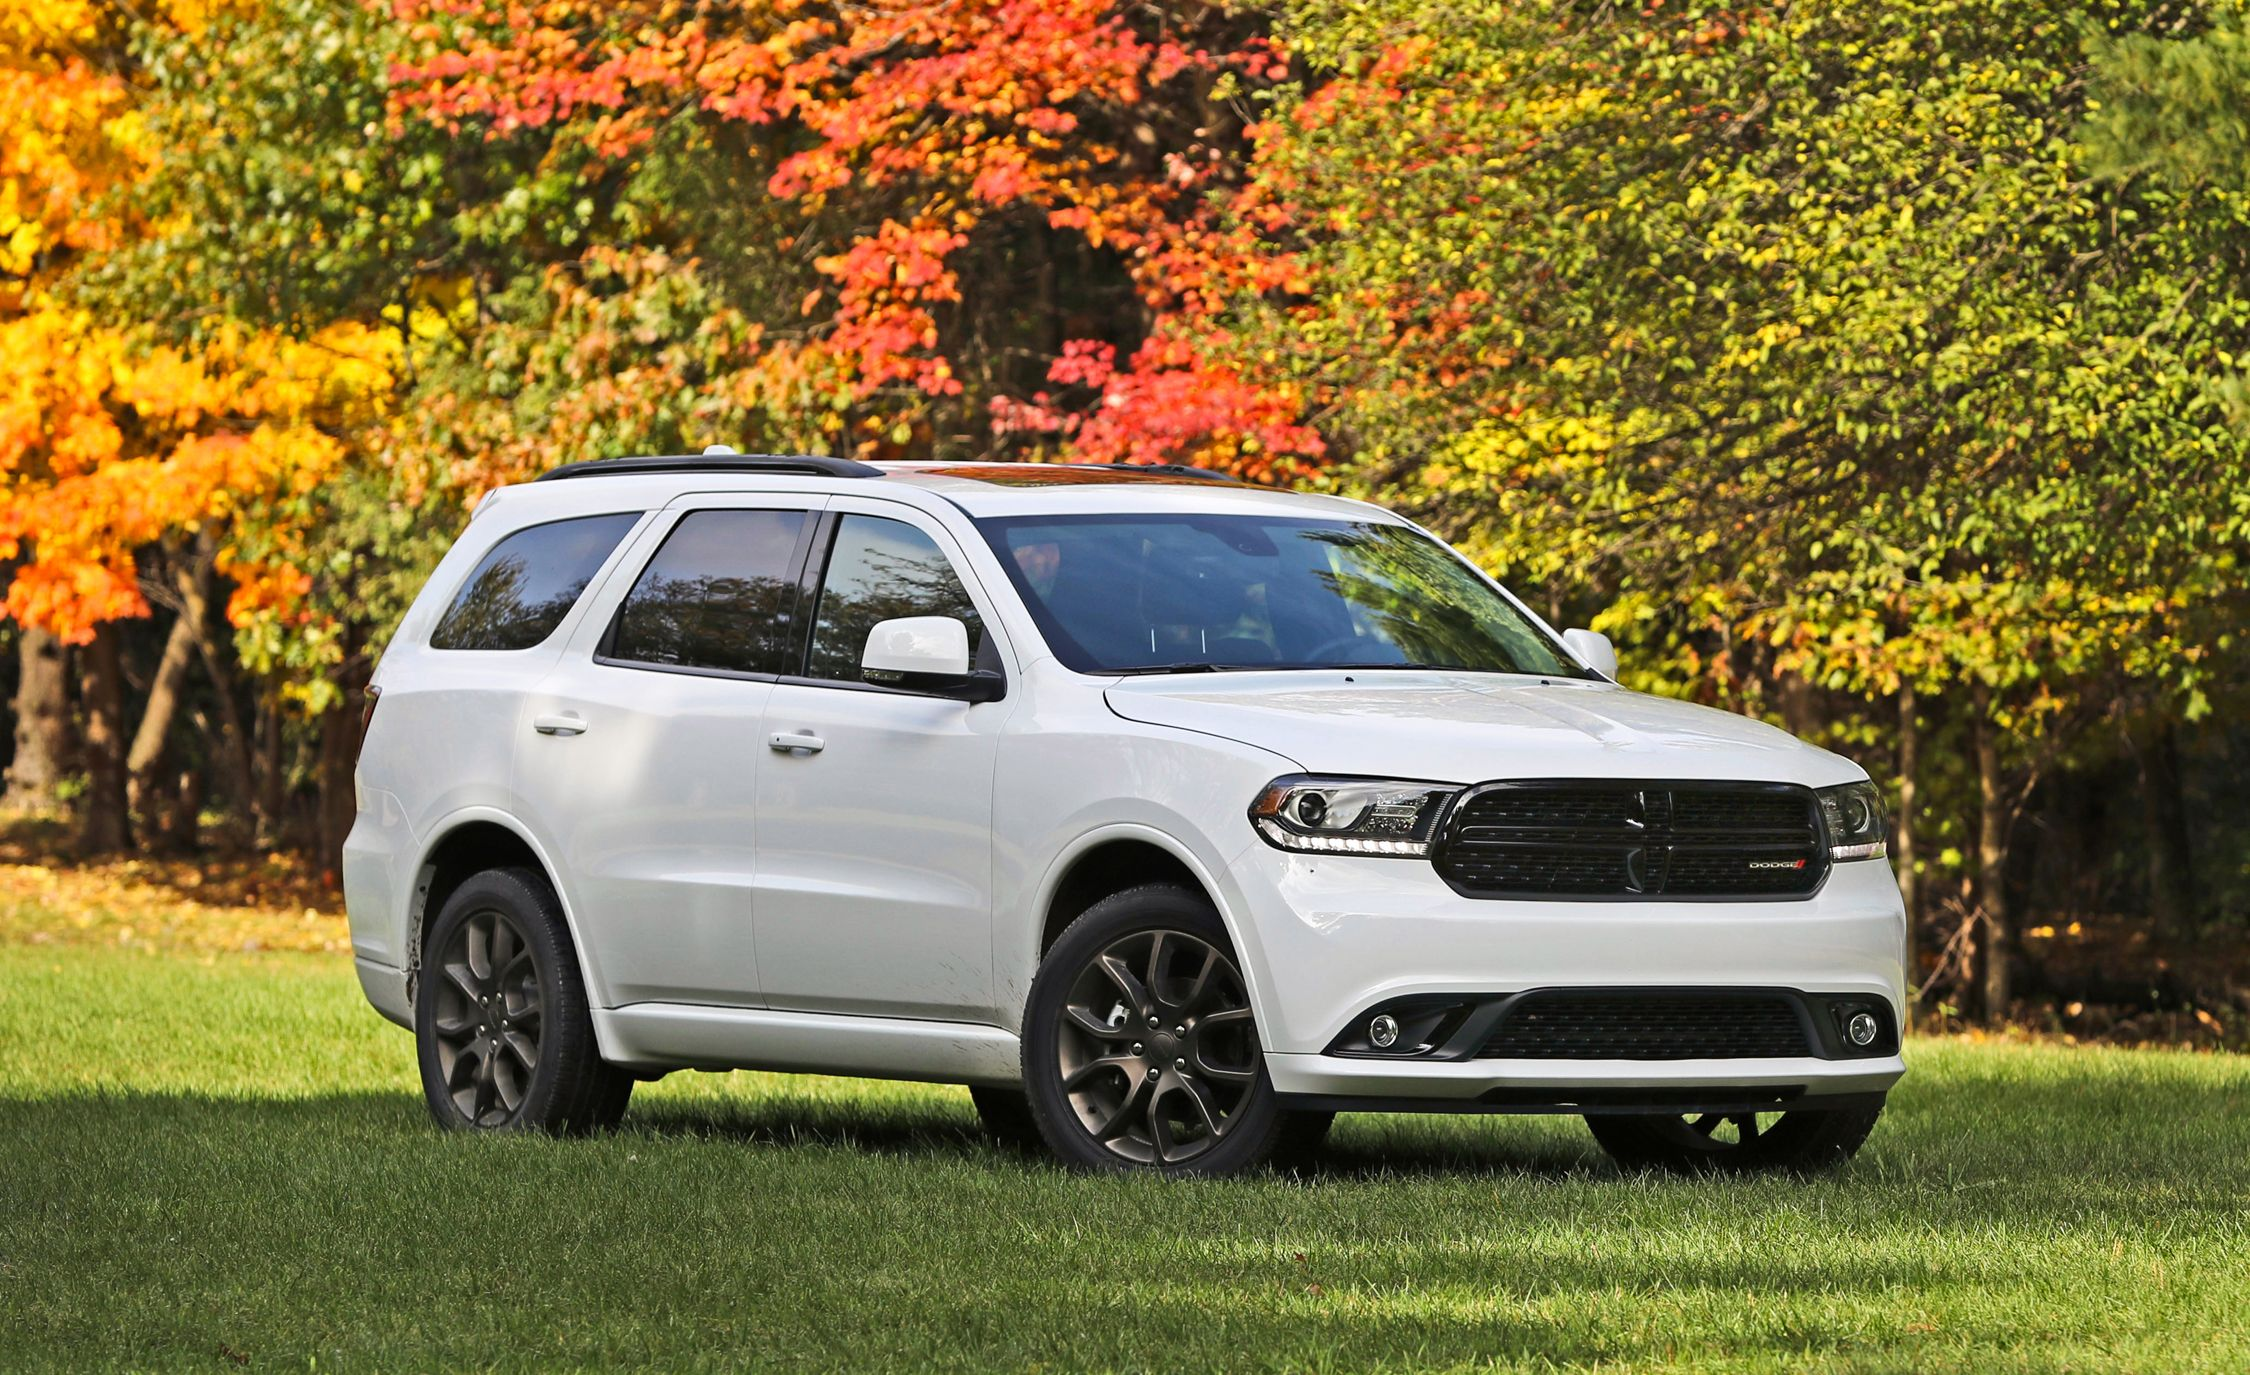 2017 Dodge Durango | In-Depth Model Review | Car and Driver